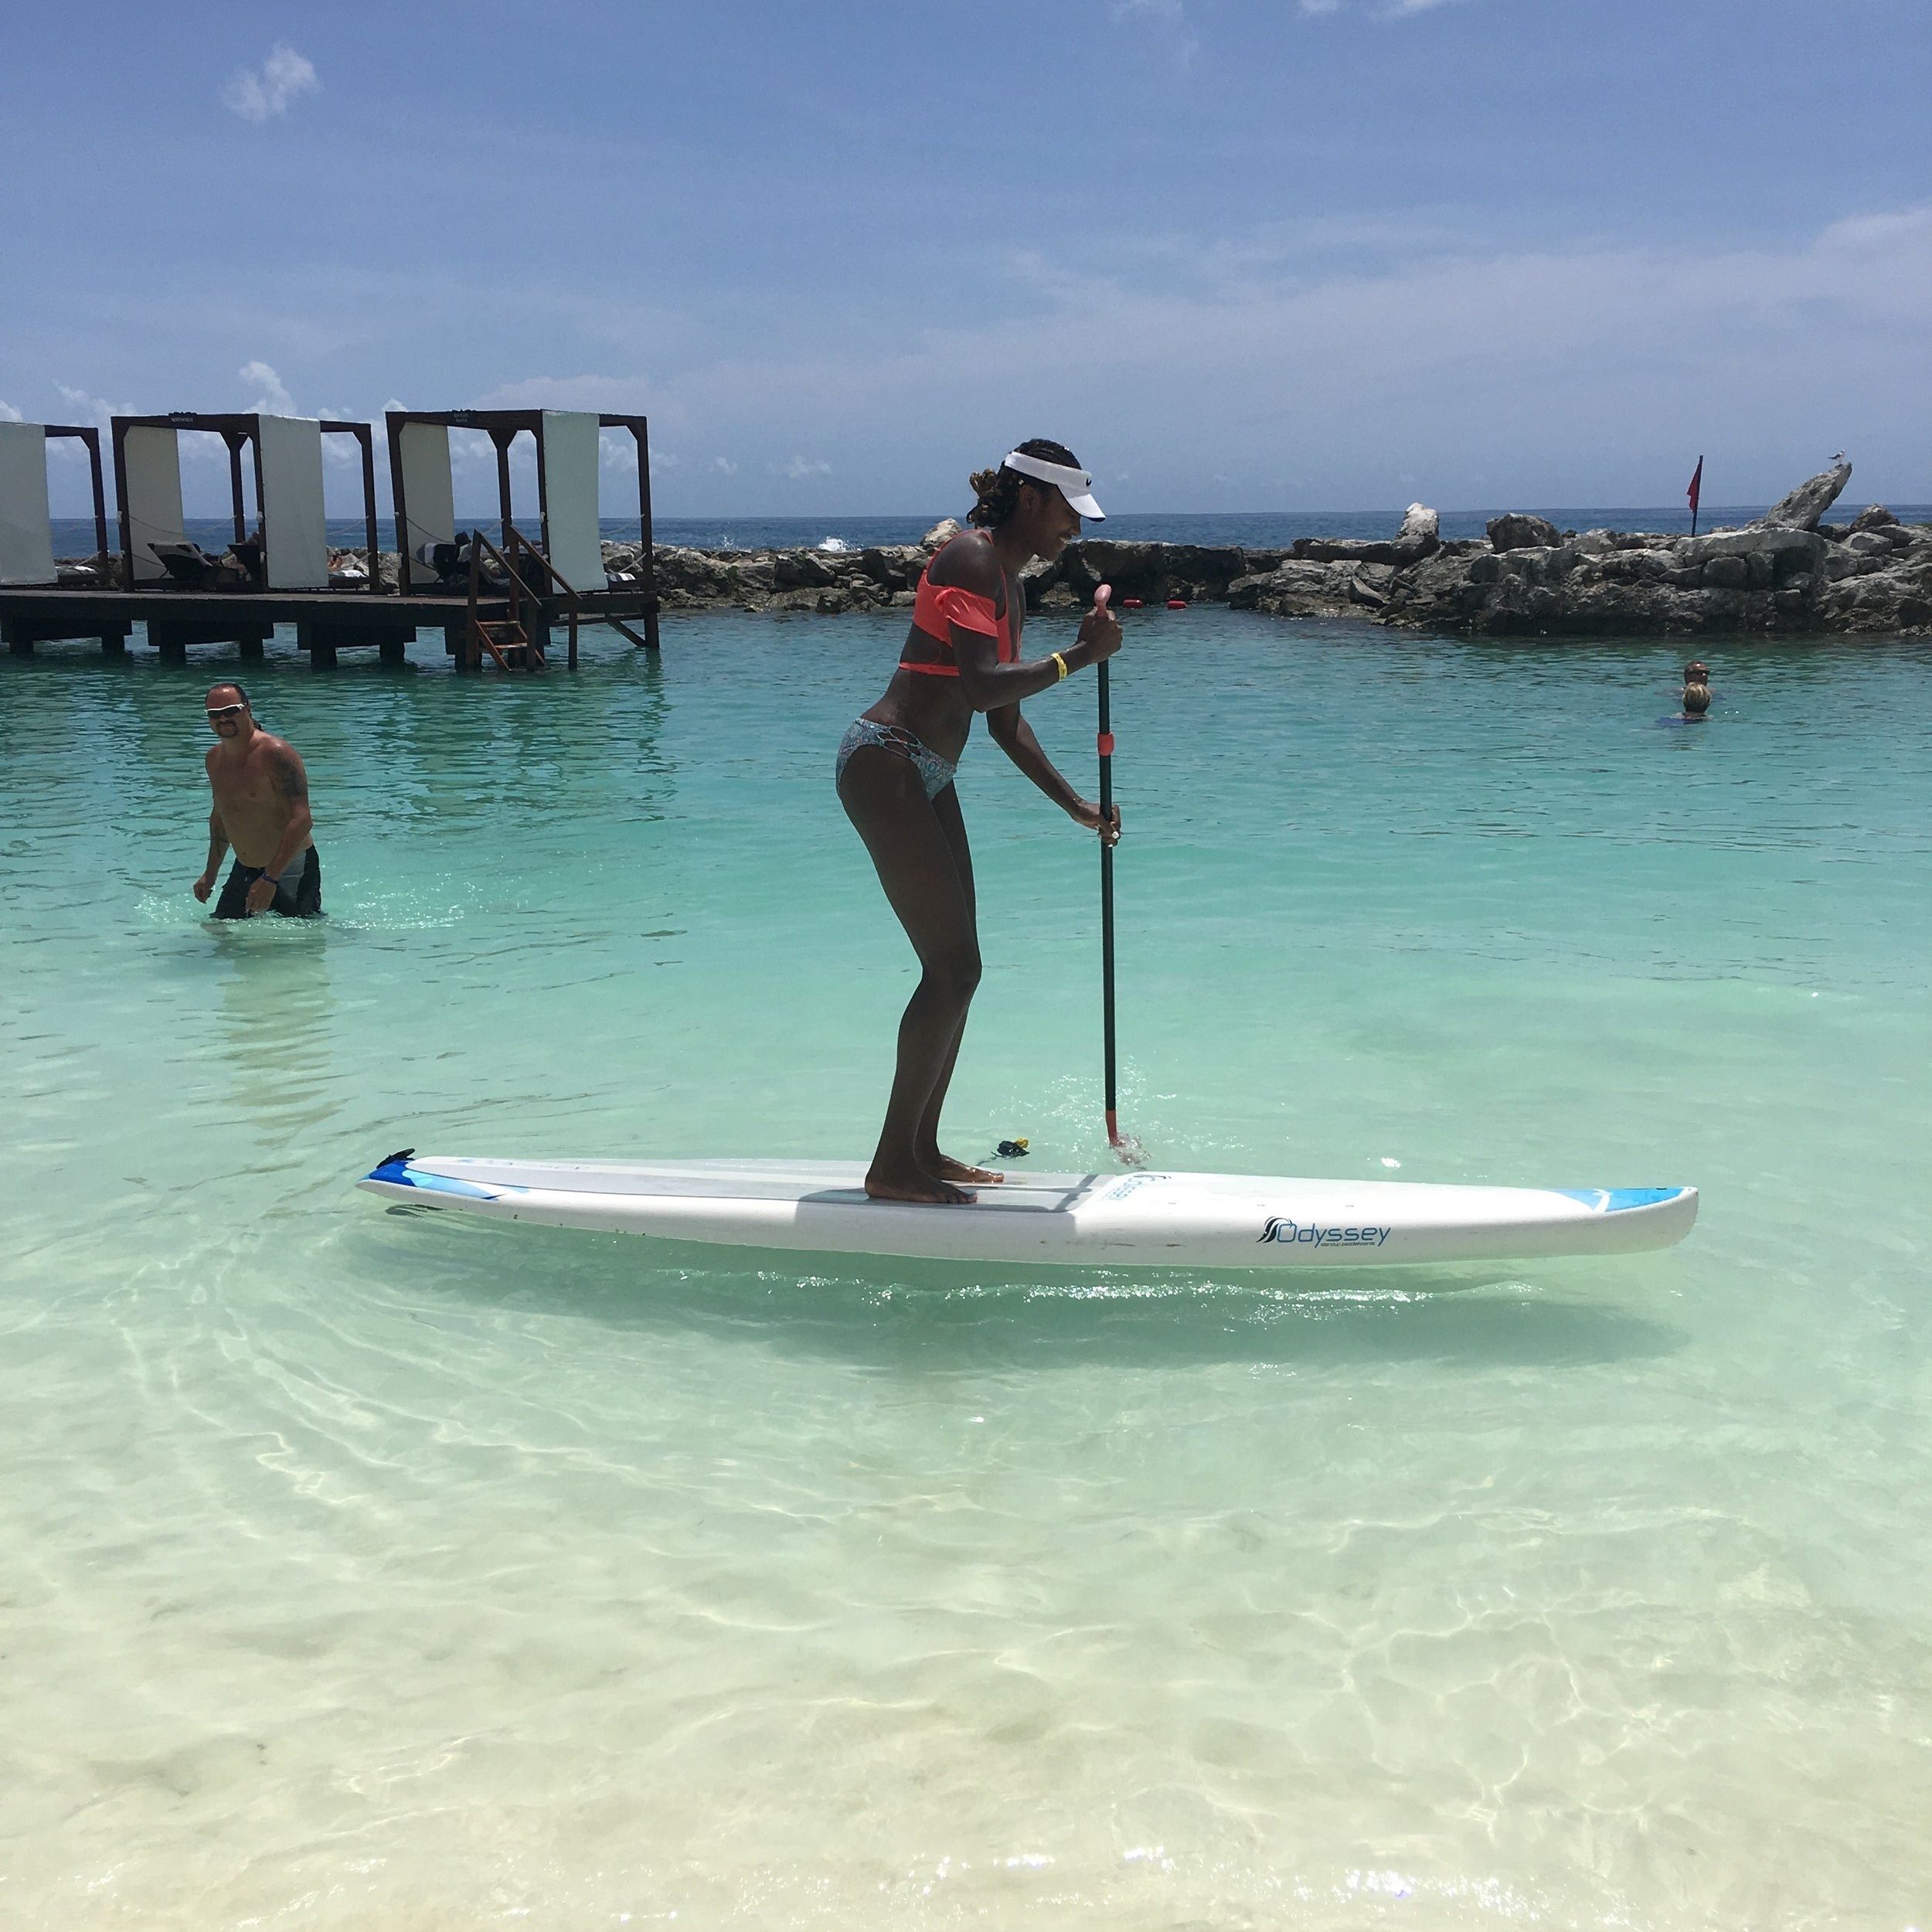 Trying paddle boarding for the first time! Fun, once you figure out the balance part!